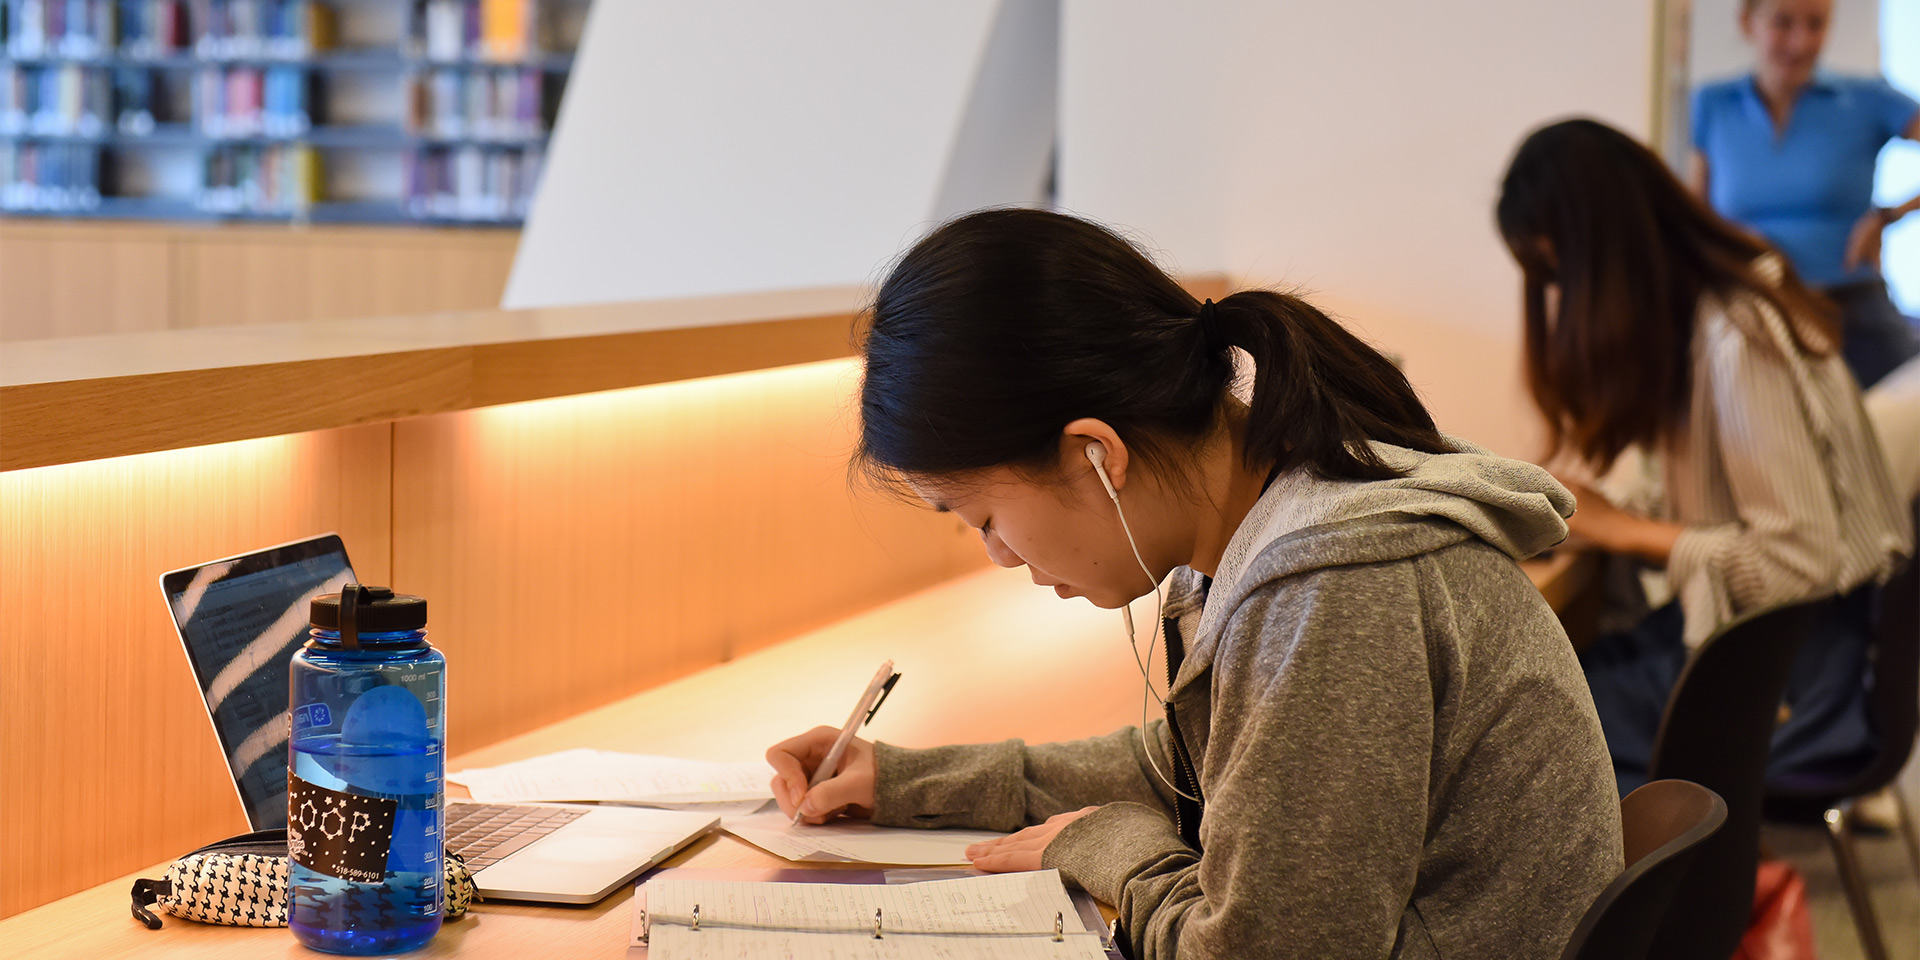 Student studying with laptop and earbuds